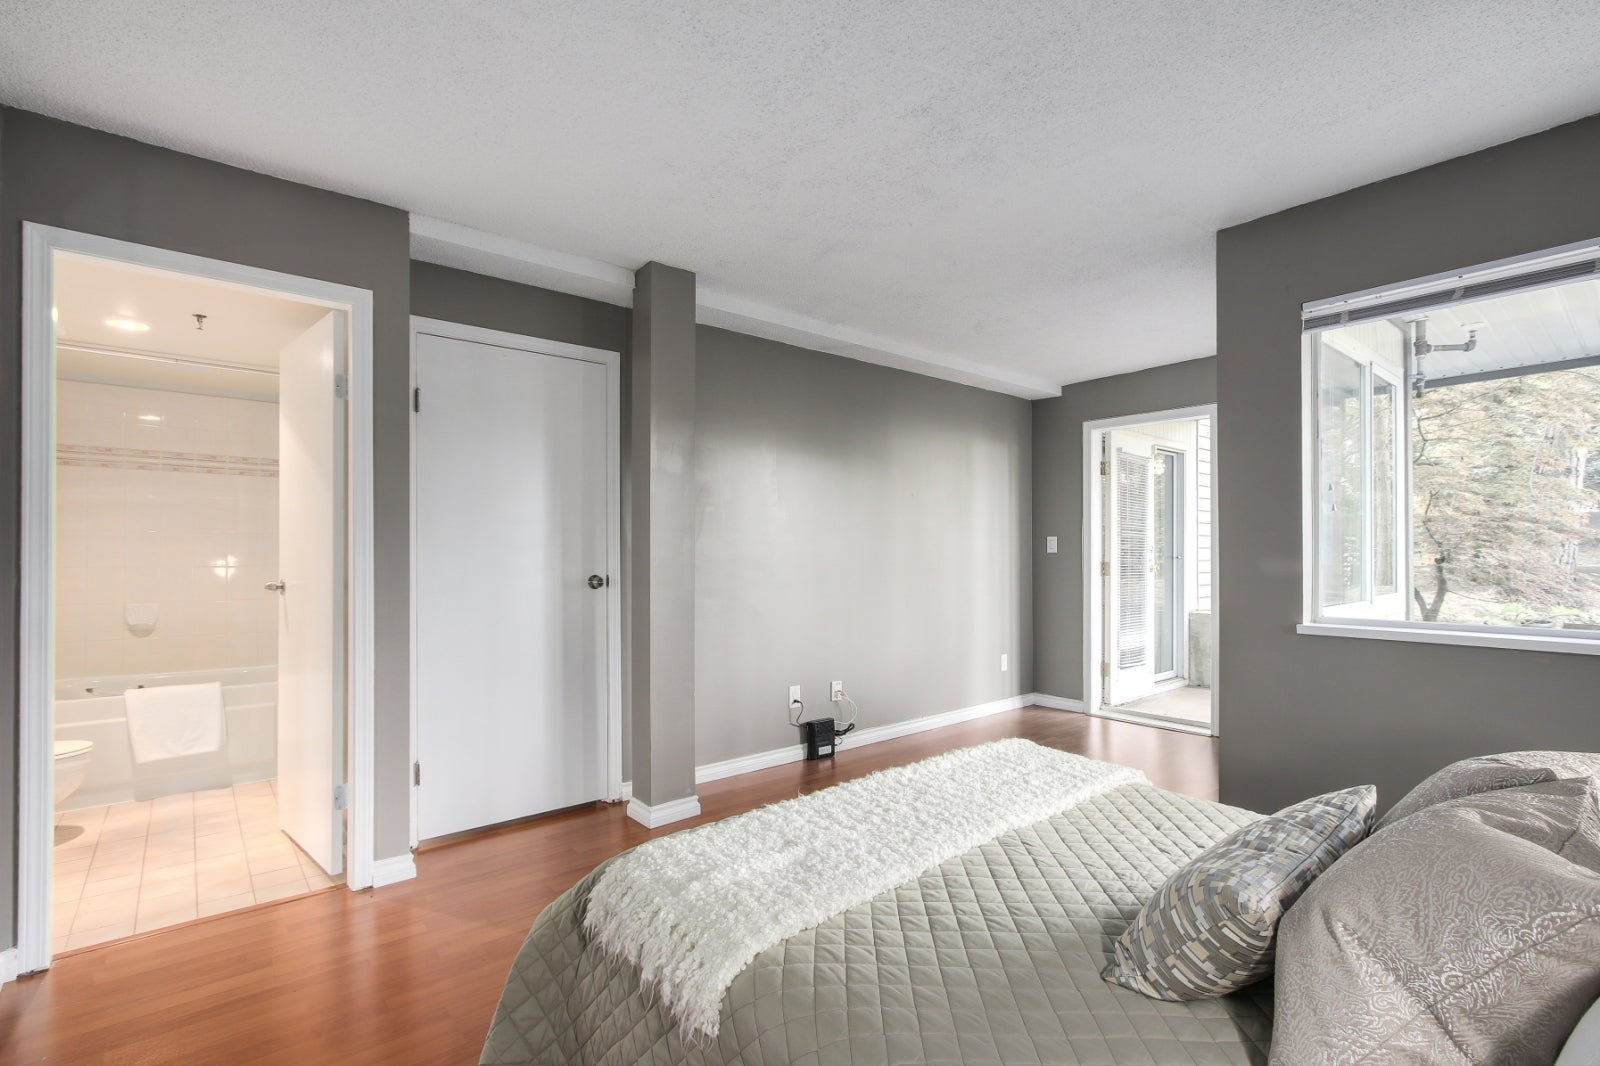 9 7345 SANDBORNE AVENUE - South Slope Townhouse for sale, 2 Bedrooms (R2165161) #15